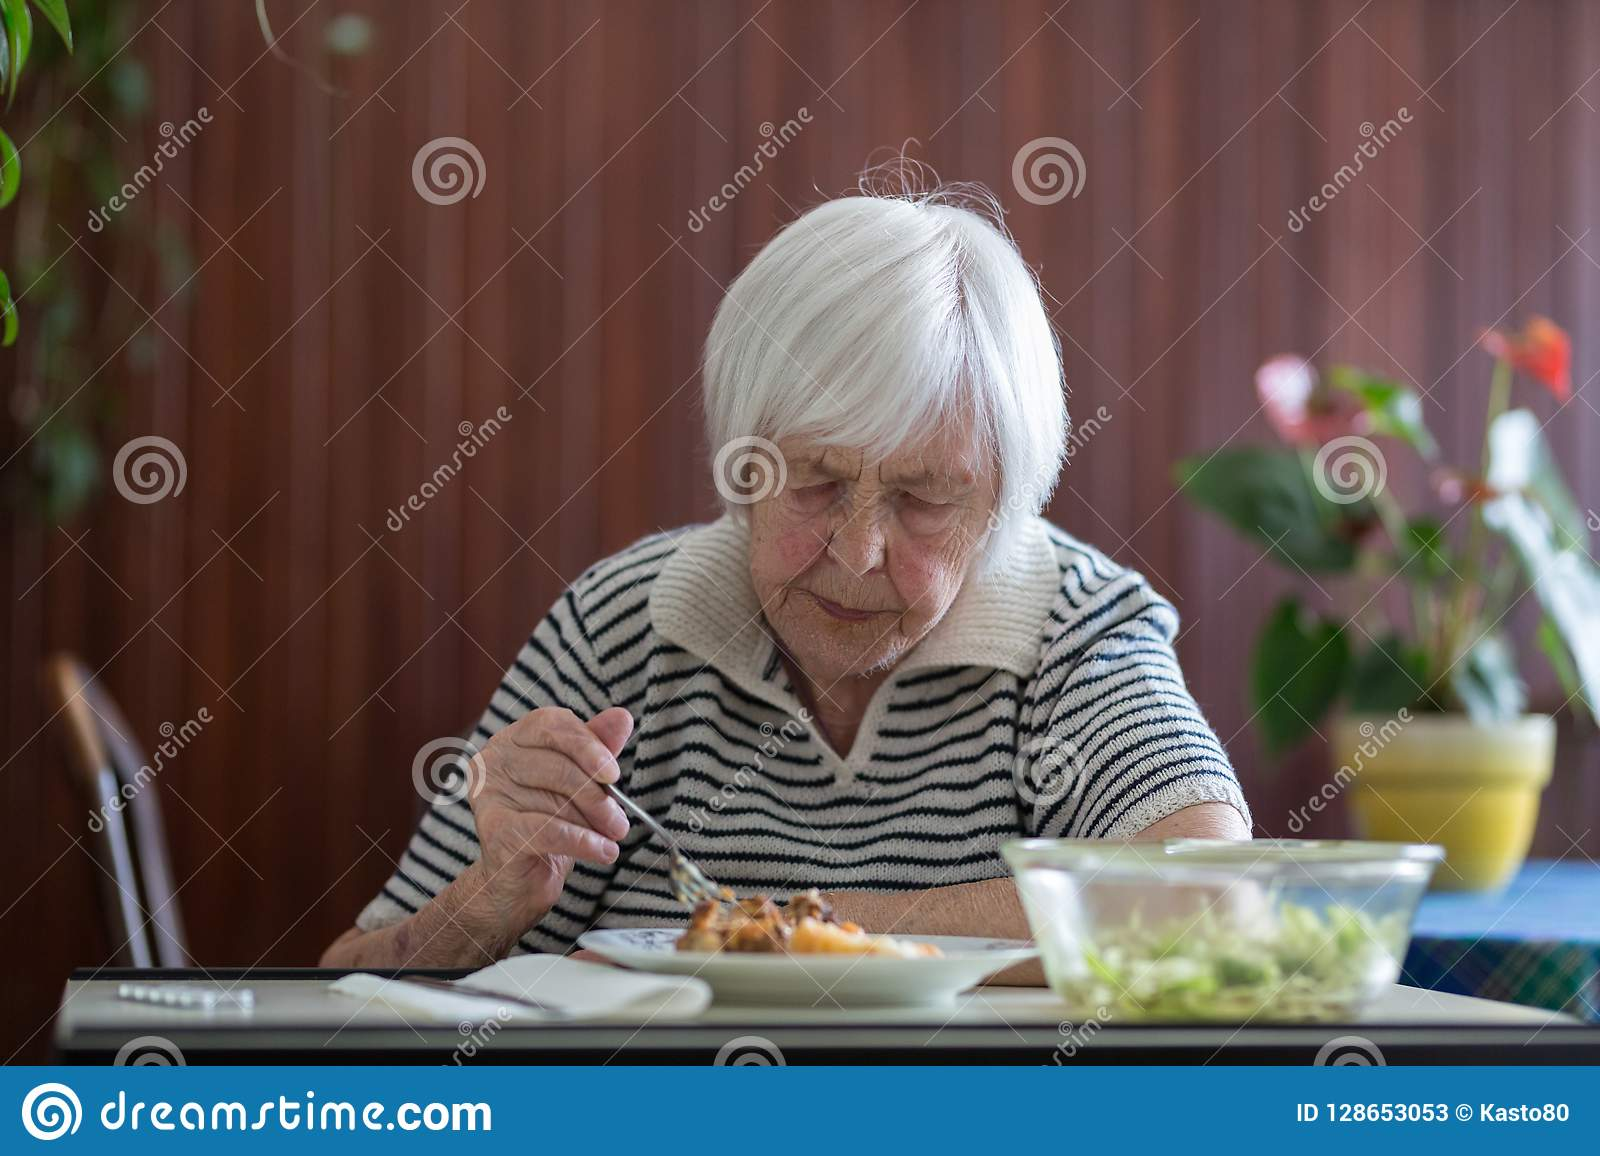 Fabulous Solitary Senior Woman Eating Her Lunch At Retirement Home Download Free Architecture Designs Scobabritishbridgeorg